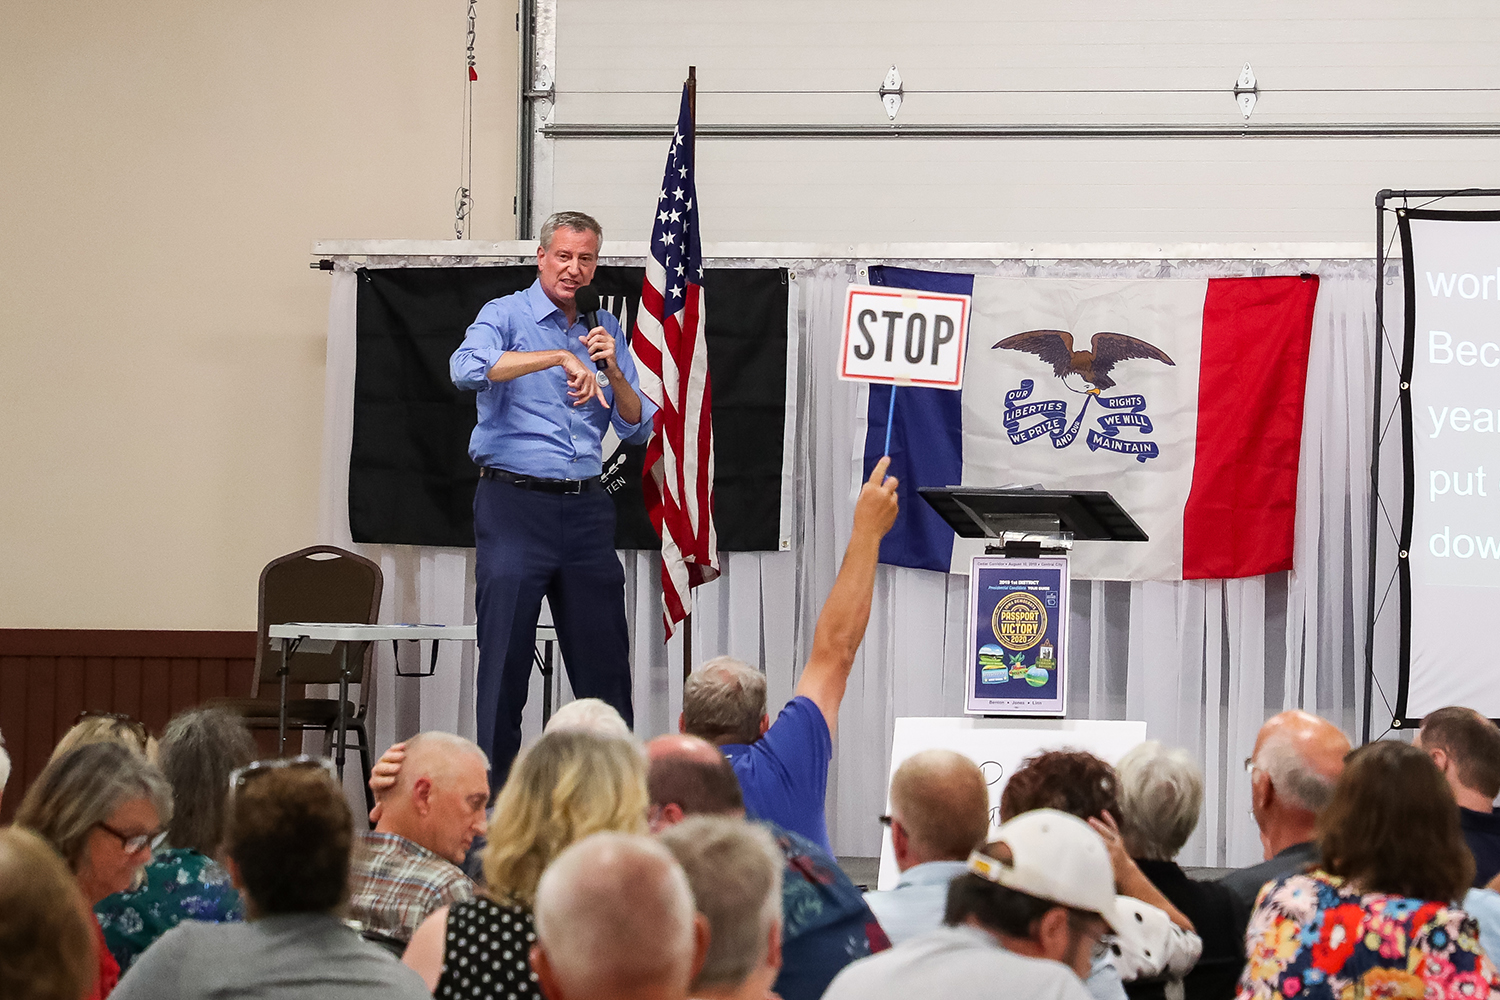 New York City Mayor Bill de Blasio speaks at the 1st District Democrats Passport to Victory rally at the Linn County Fairgrounds on Saturday, Aug. 10, 2019.